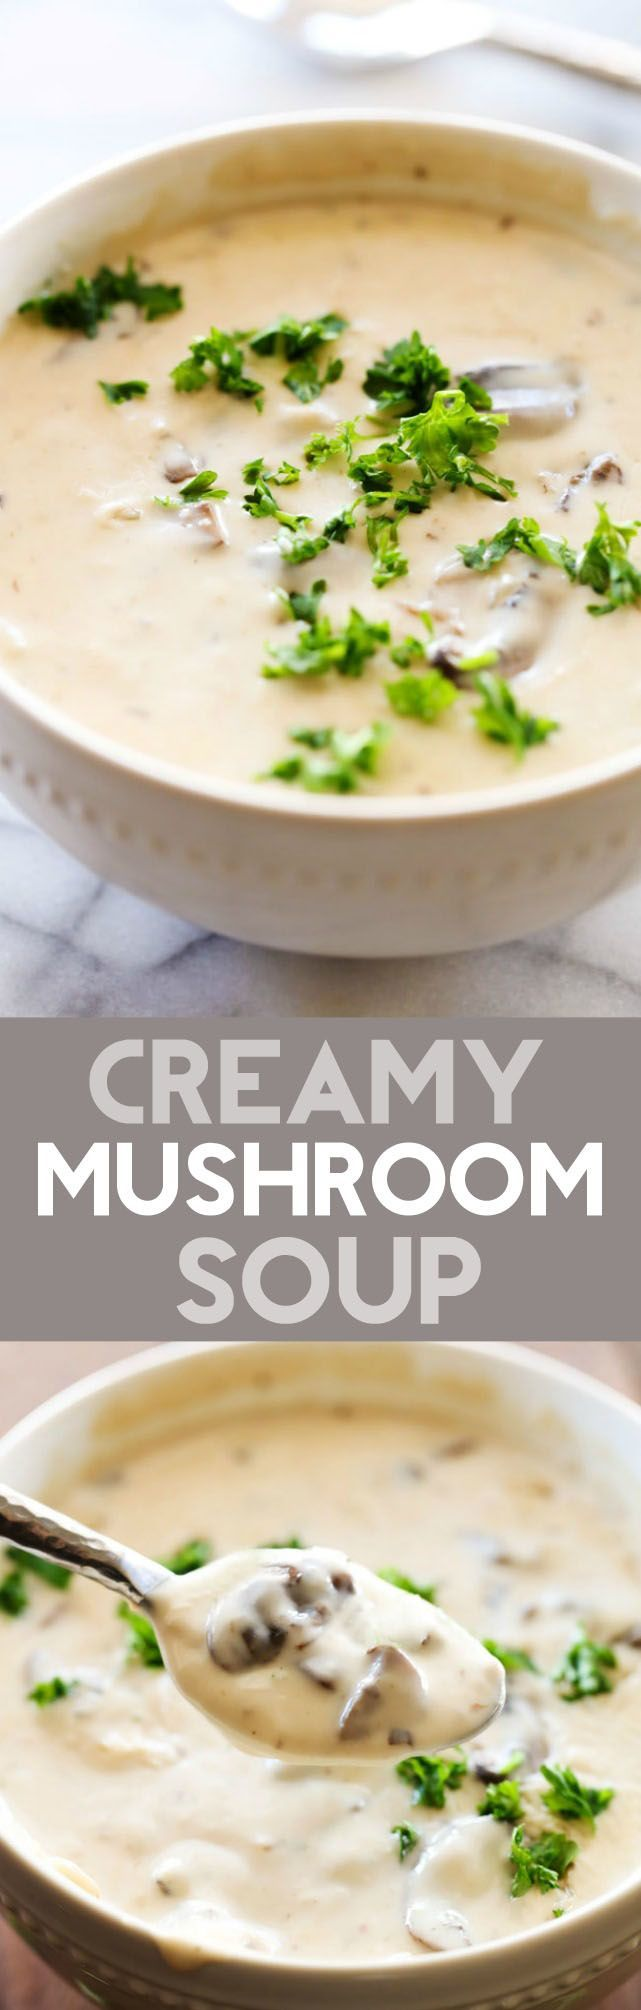 Creamy Mushroom Soup - This is a recipe that will completely wow all who try it! The flavor is undeniably delicious and the smooth texture is phenomenal!